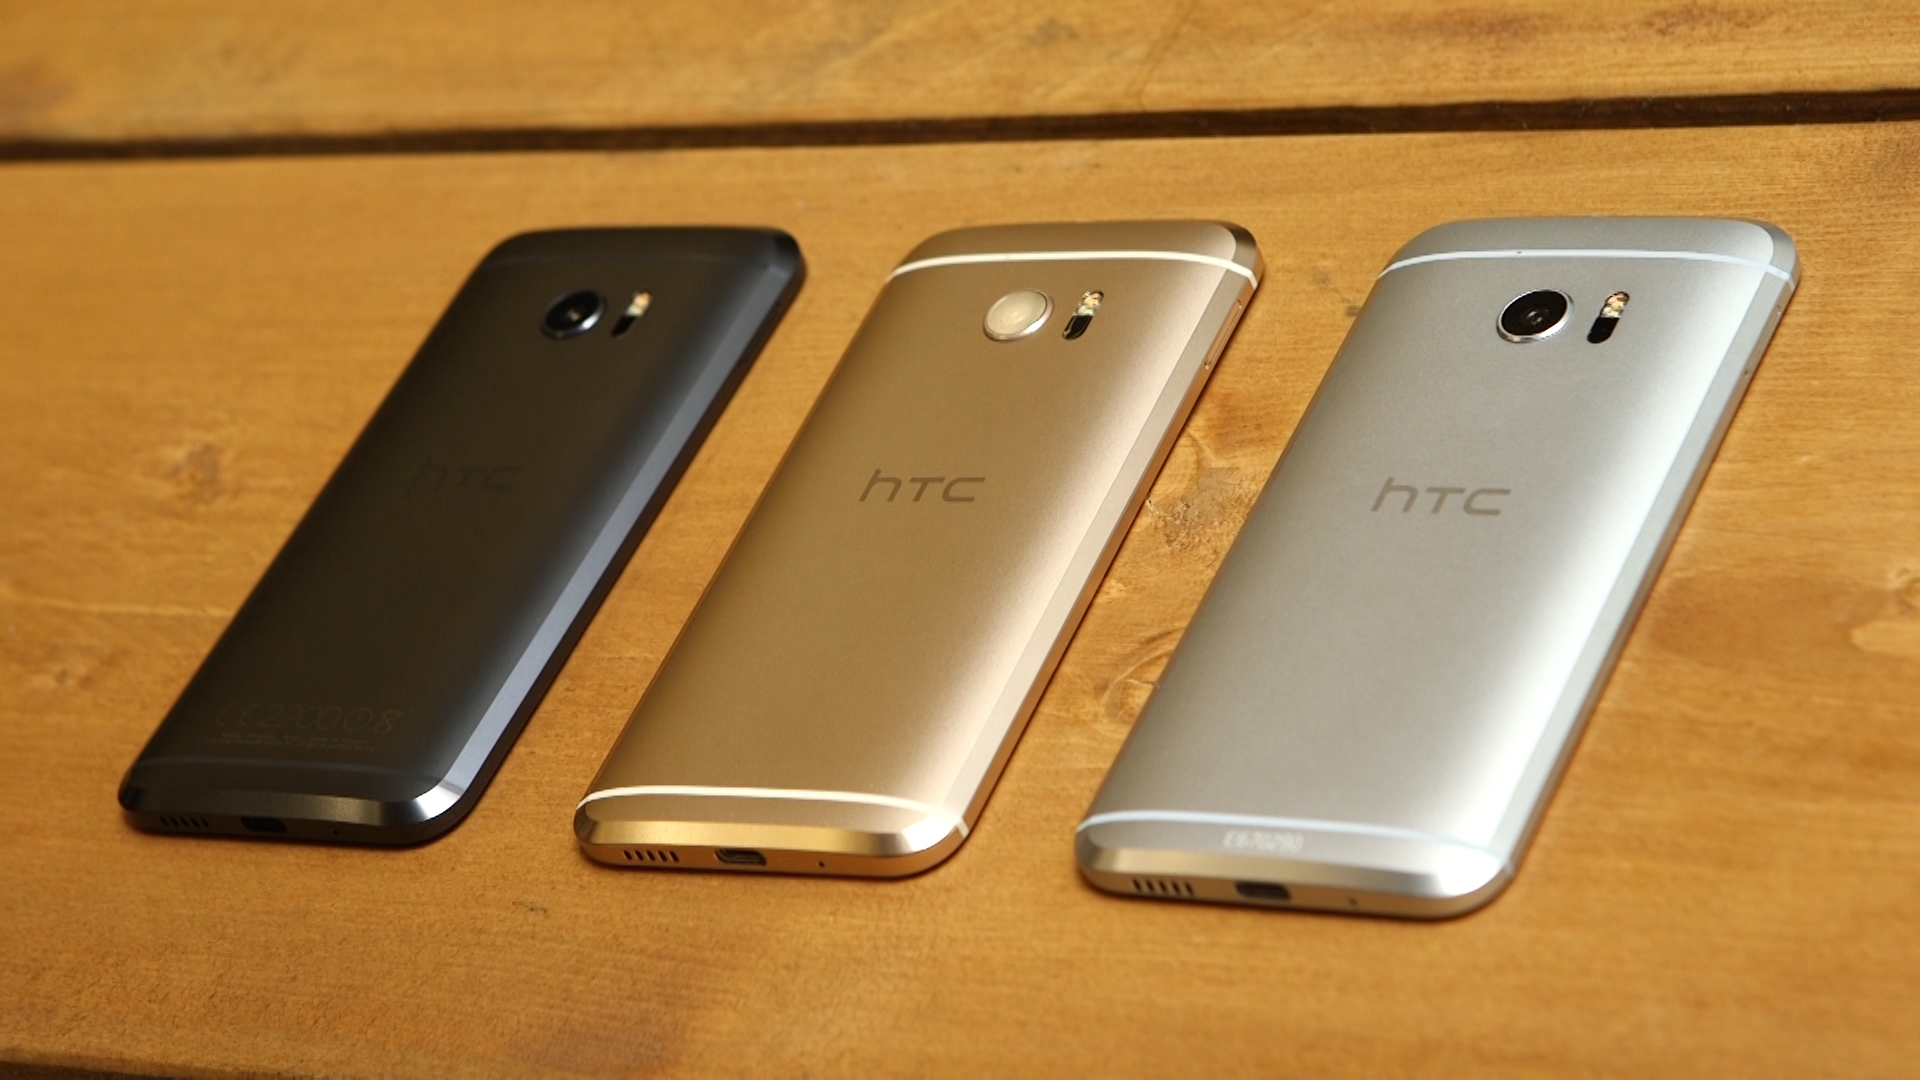 Hands-on with the familiar metal curves of the HTC 10